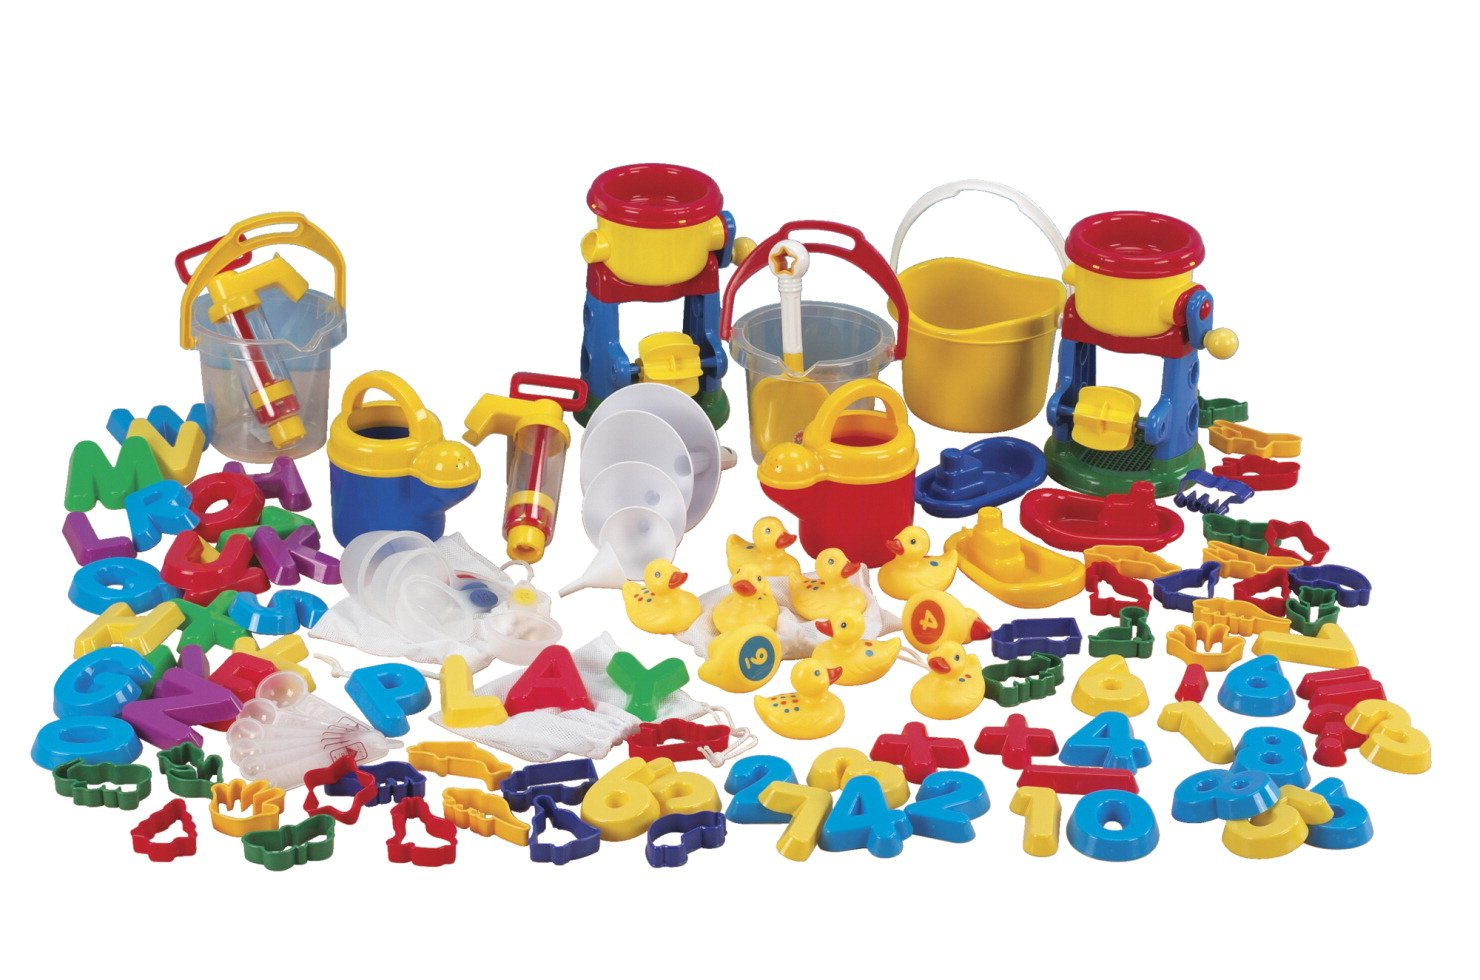 Childcraft Sand and Water Toys Play Package, Assorted Colors, 99 Pieces by Childcraft